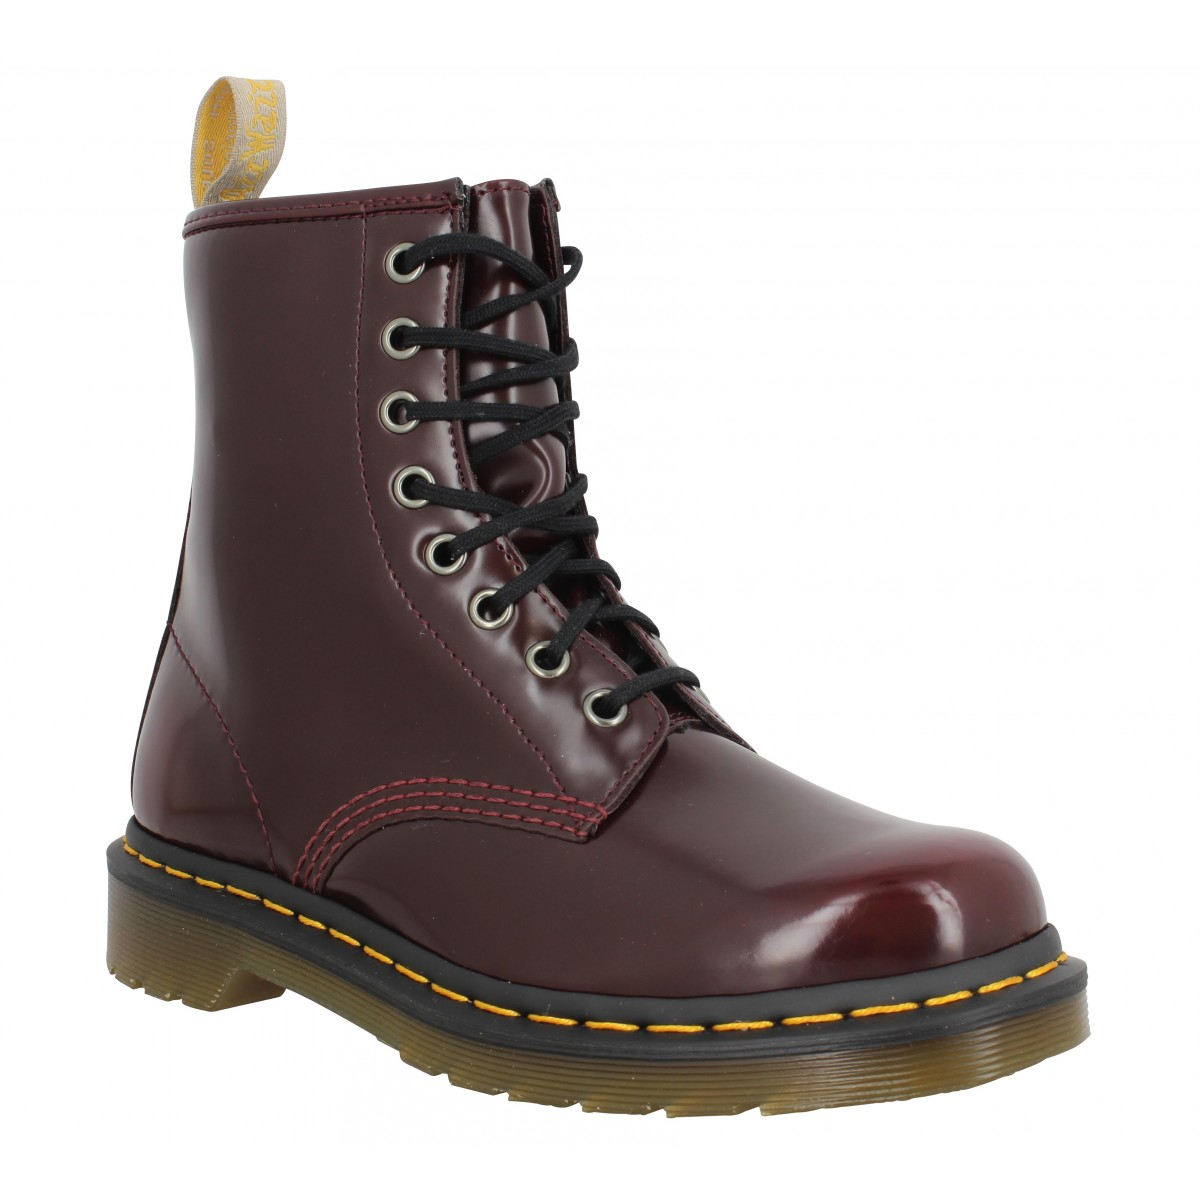 Bottines Dr MARTENS Vegan 1460 simili Femme Cherry Red